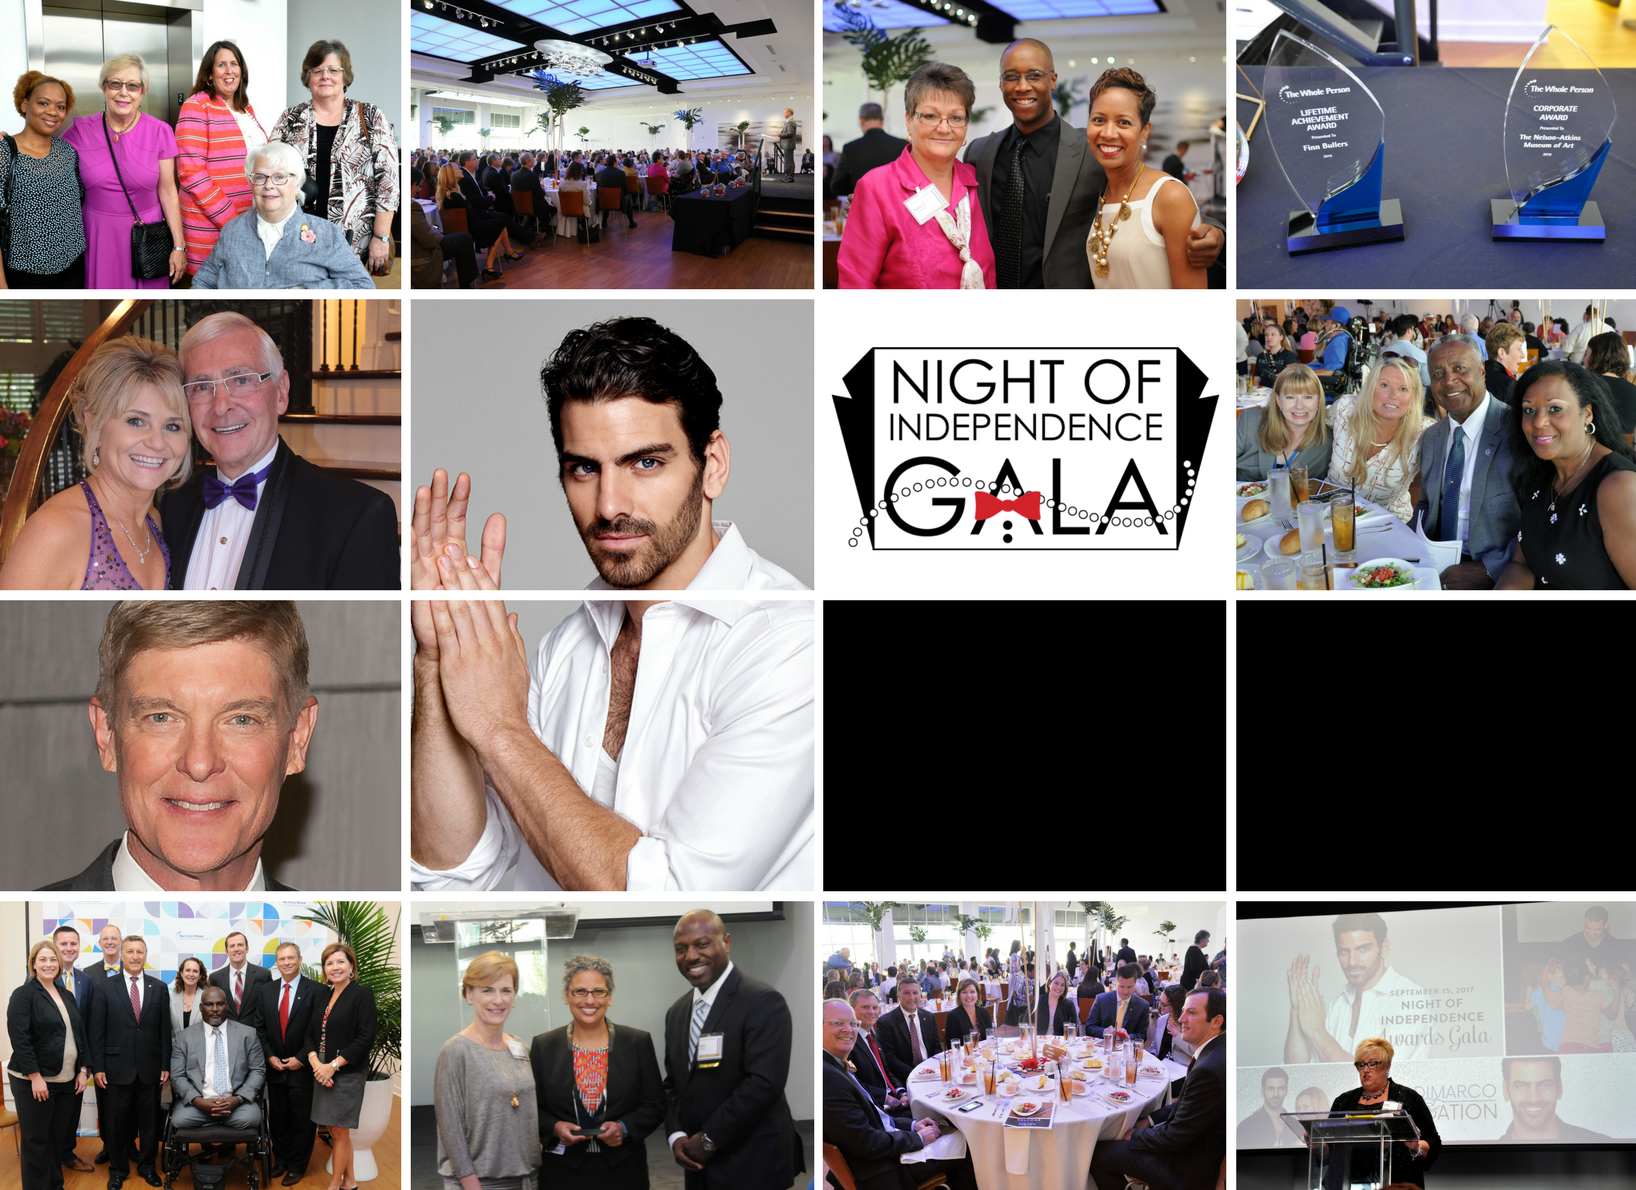 Night of Independence Gala, September 15